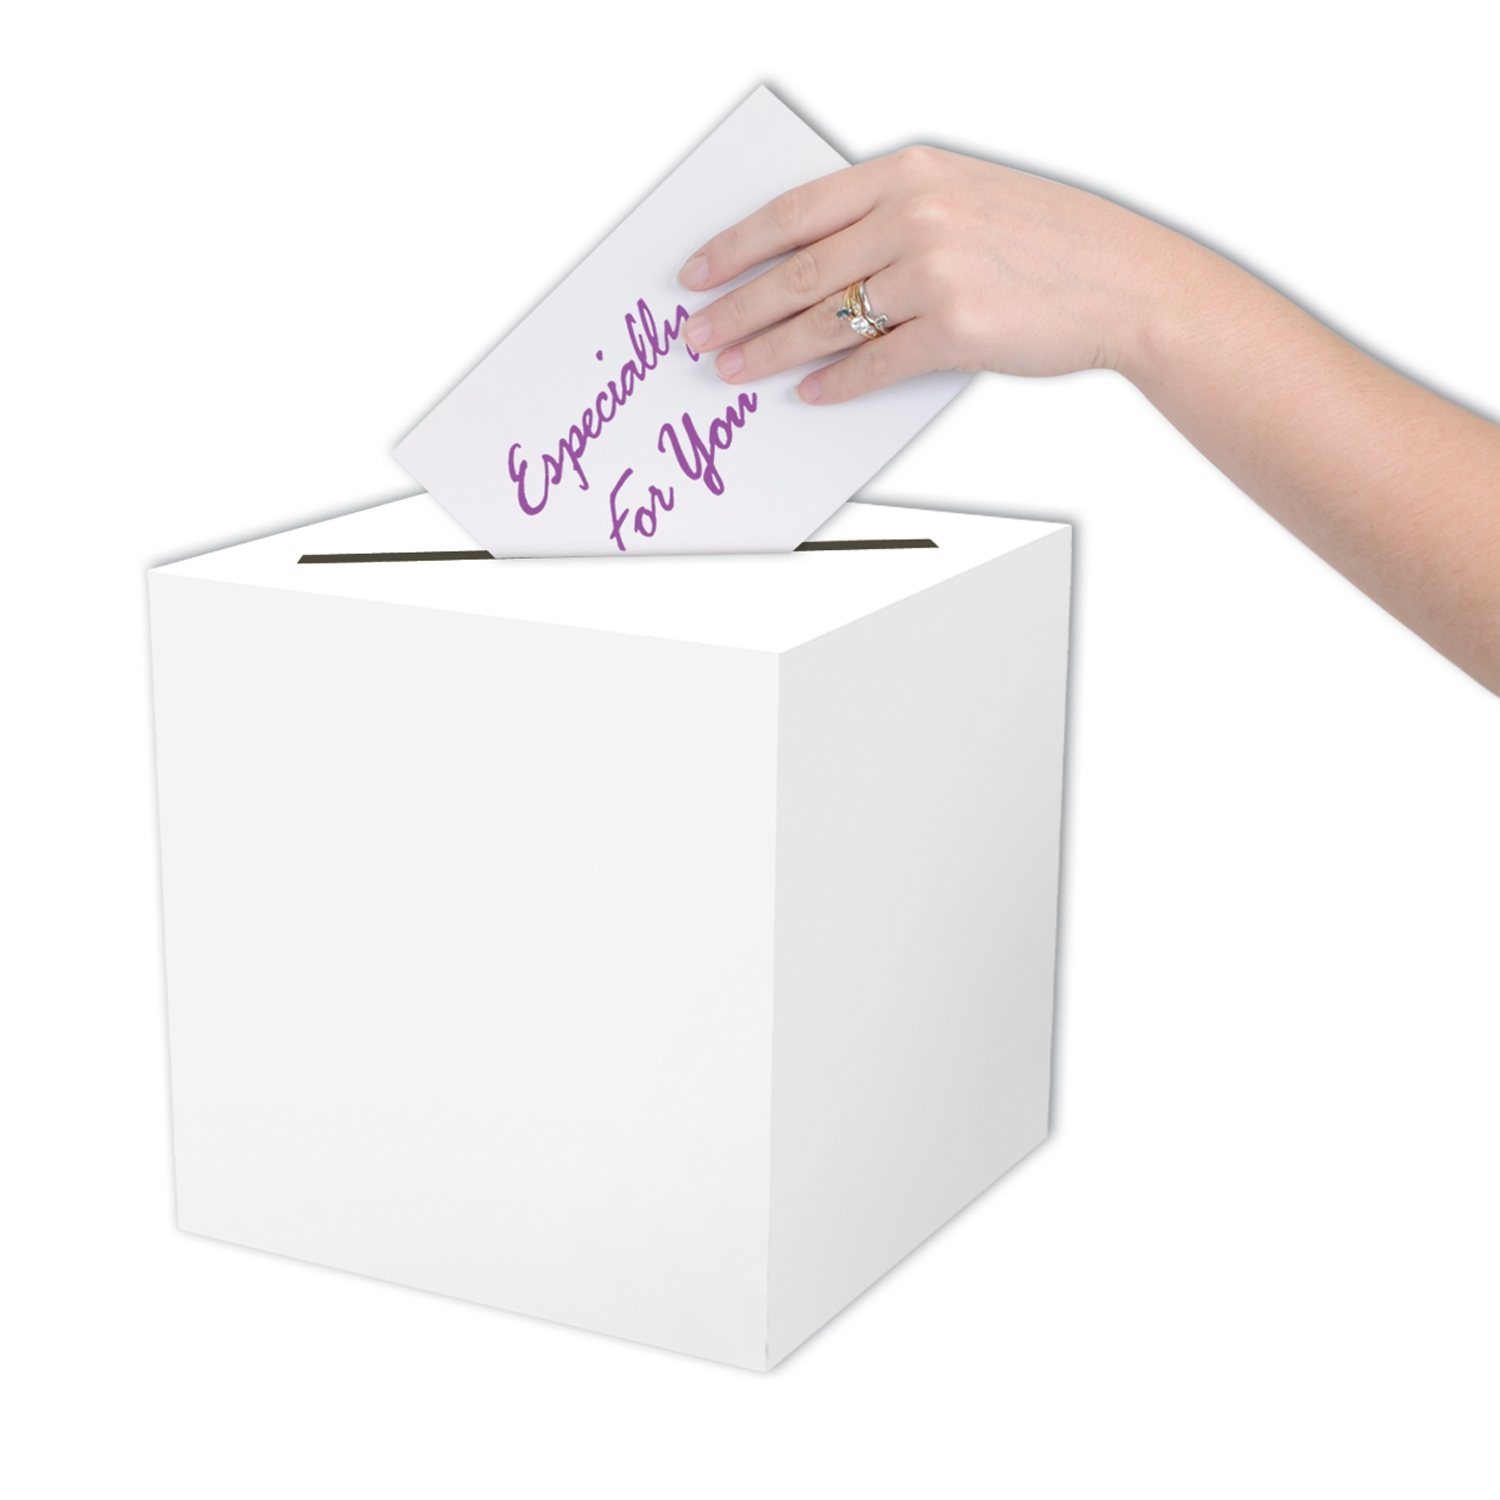 All-Purpose Card Box (Pack of 6) Card Box, Raffle Tickets, General Occasion, Every day decor, Halloween costume costest, New Years Eve, Birthday Day Party, Wholesale Party Supplies, Inexpensive party decor, Bulk boxes, Plain White Box